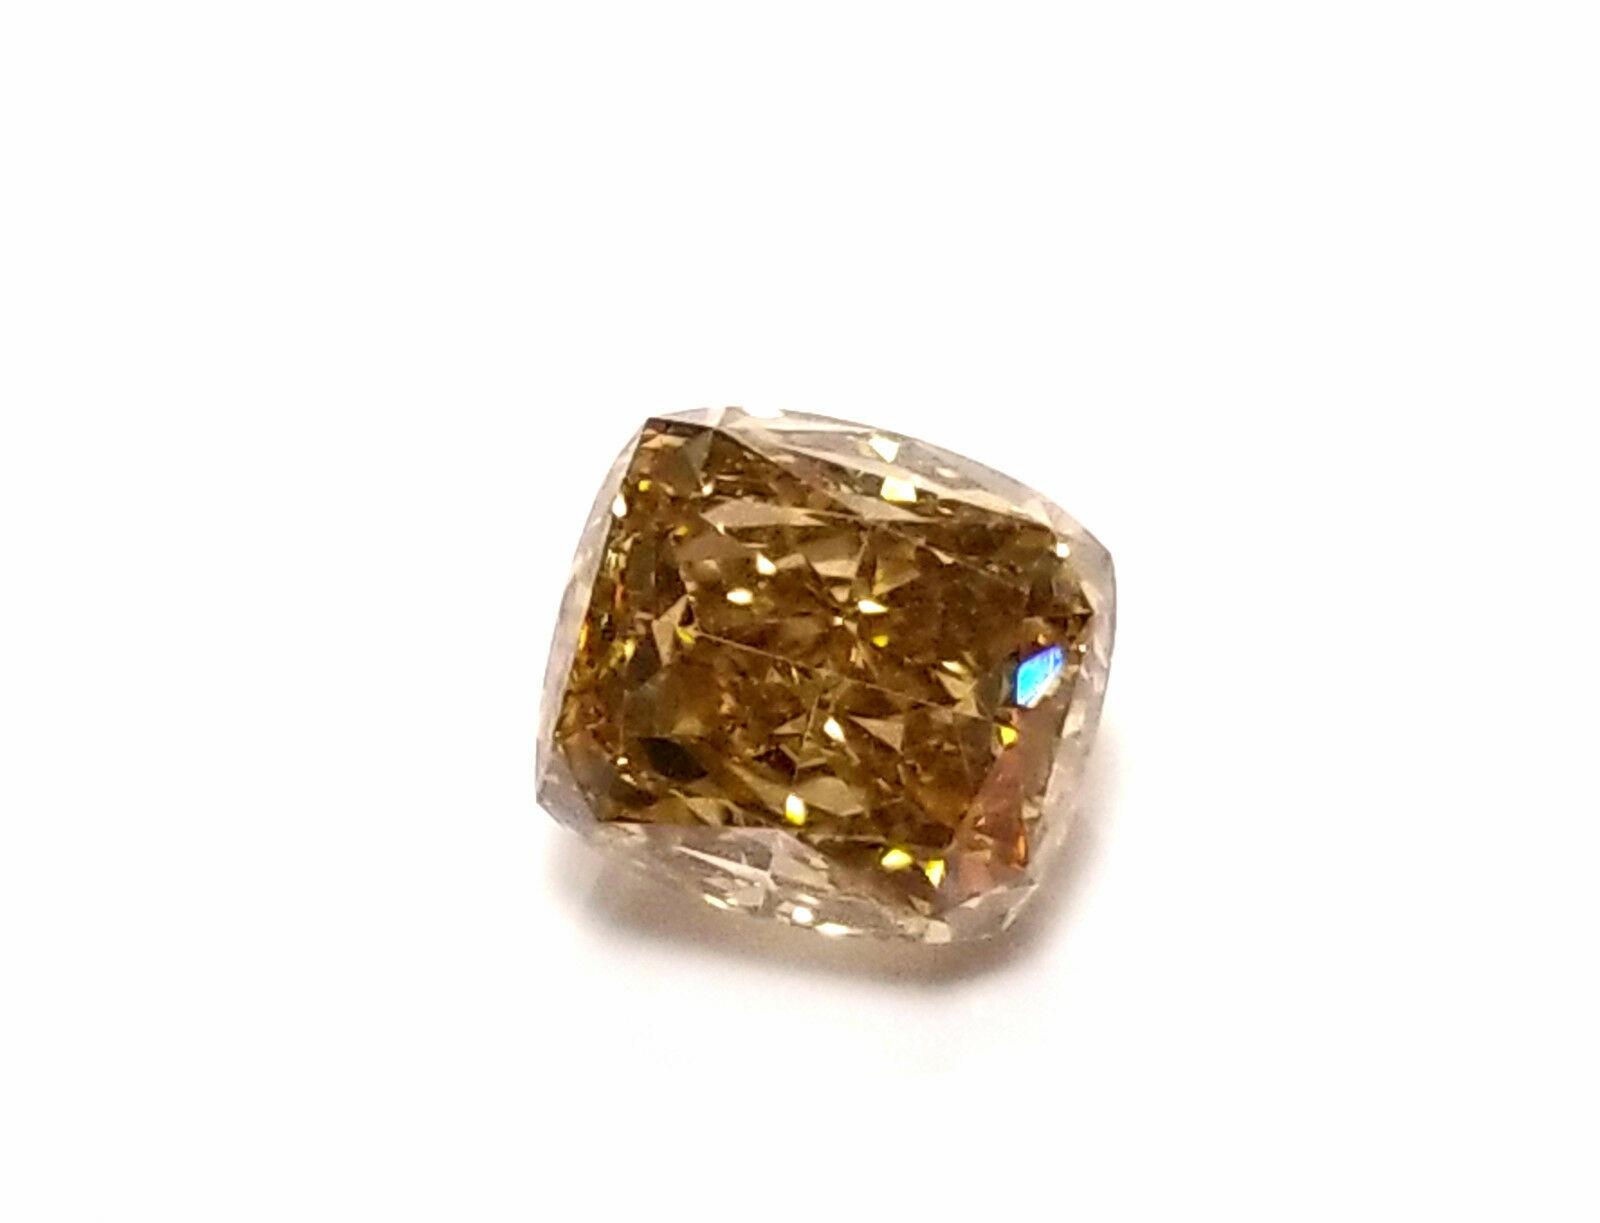 Whiskey 1.03ct Natural Loose Real Fancy Brown Diamond Cushion Cut SI1 GIA